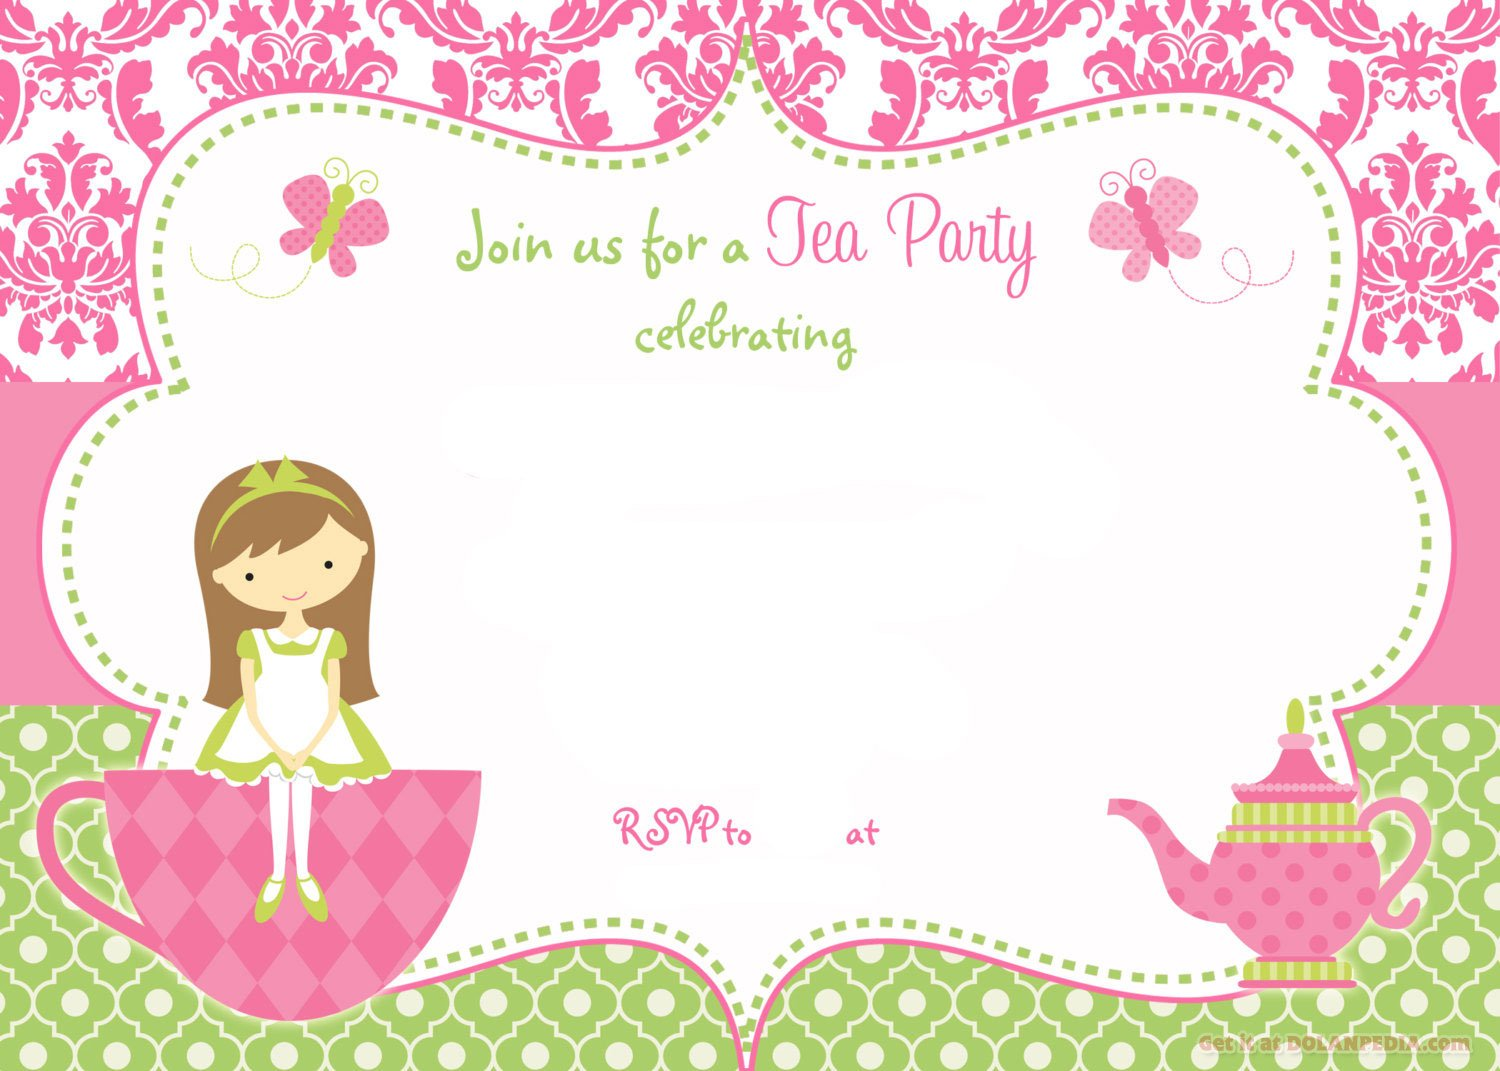 Free Printable Tea Party Invitation Template For Girl Drevio - Tea party invitation template free